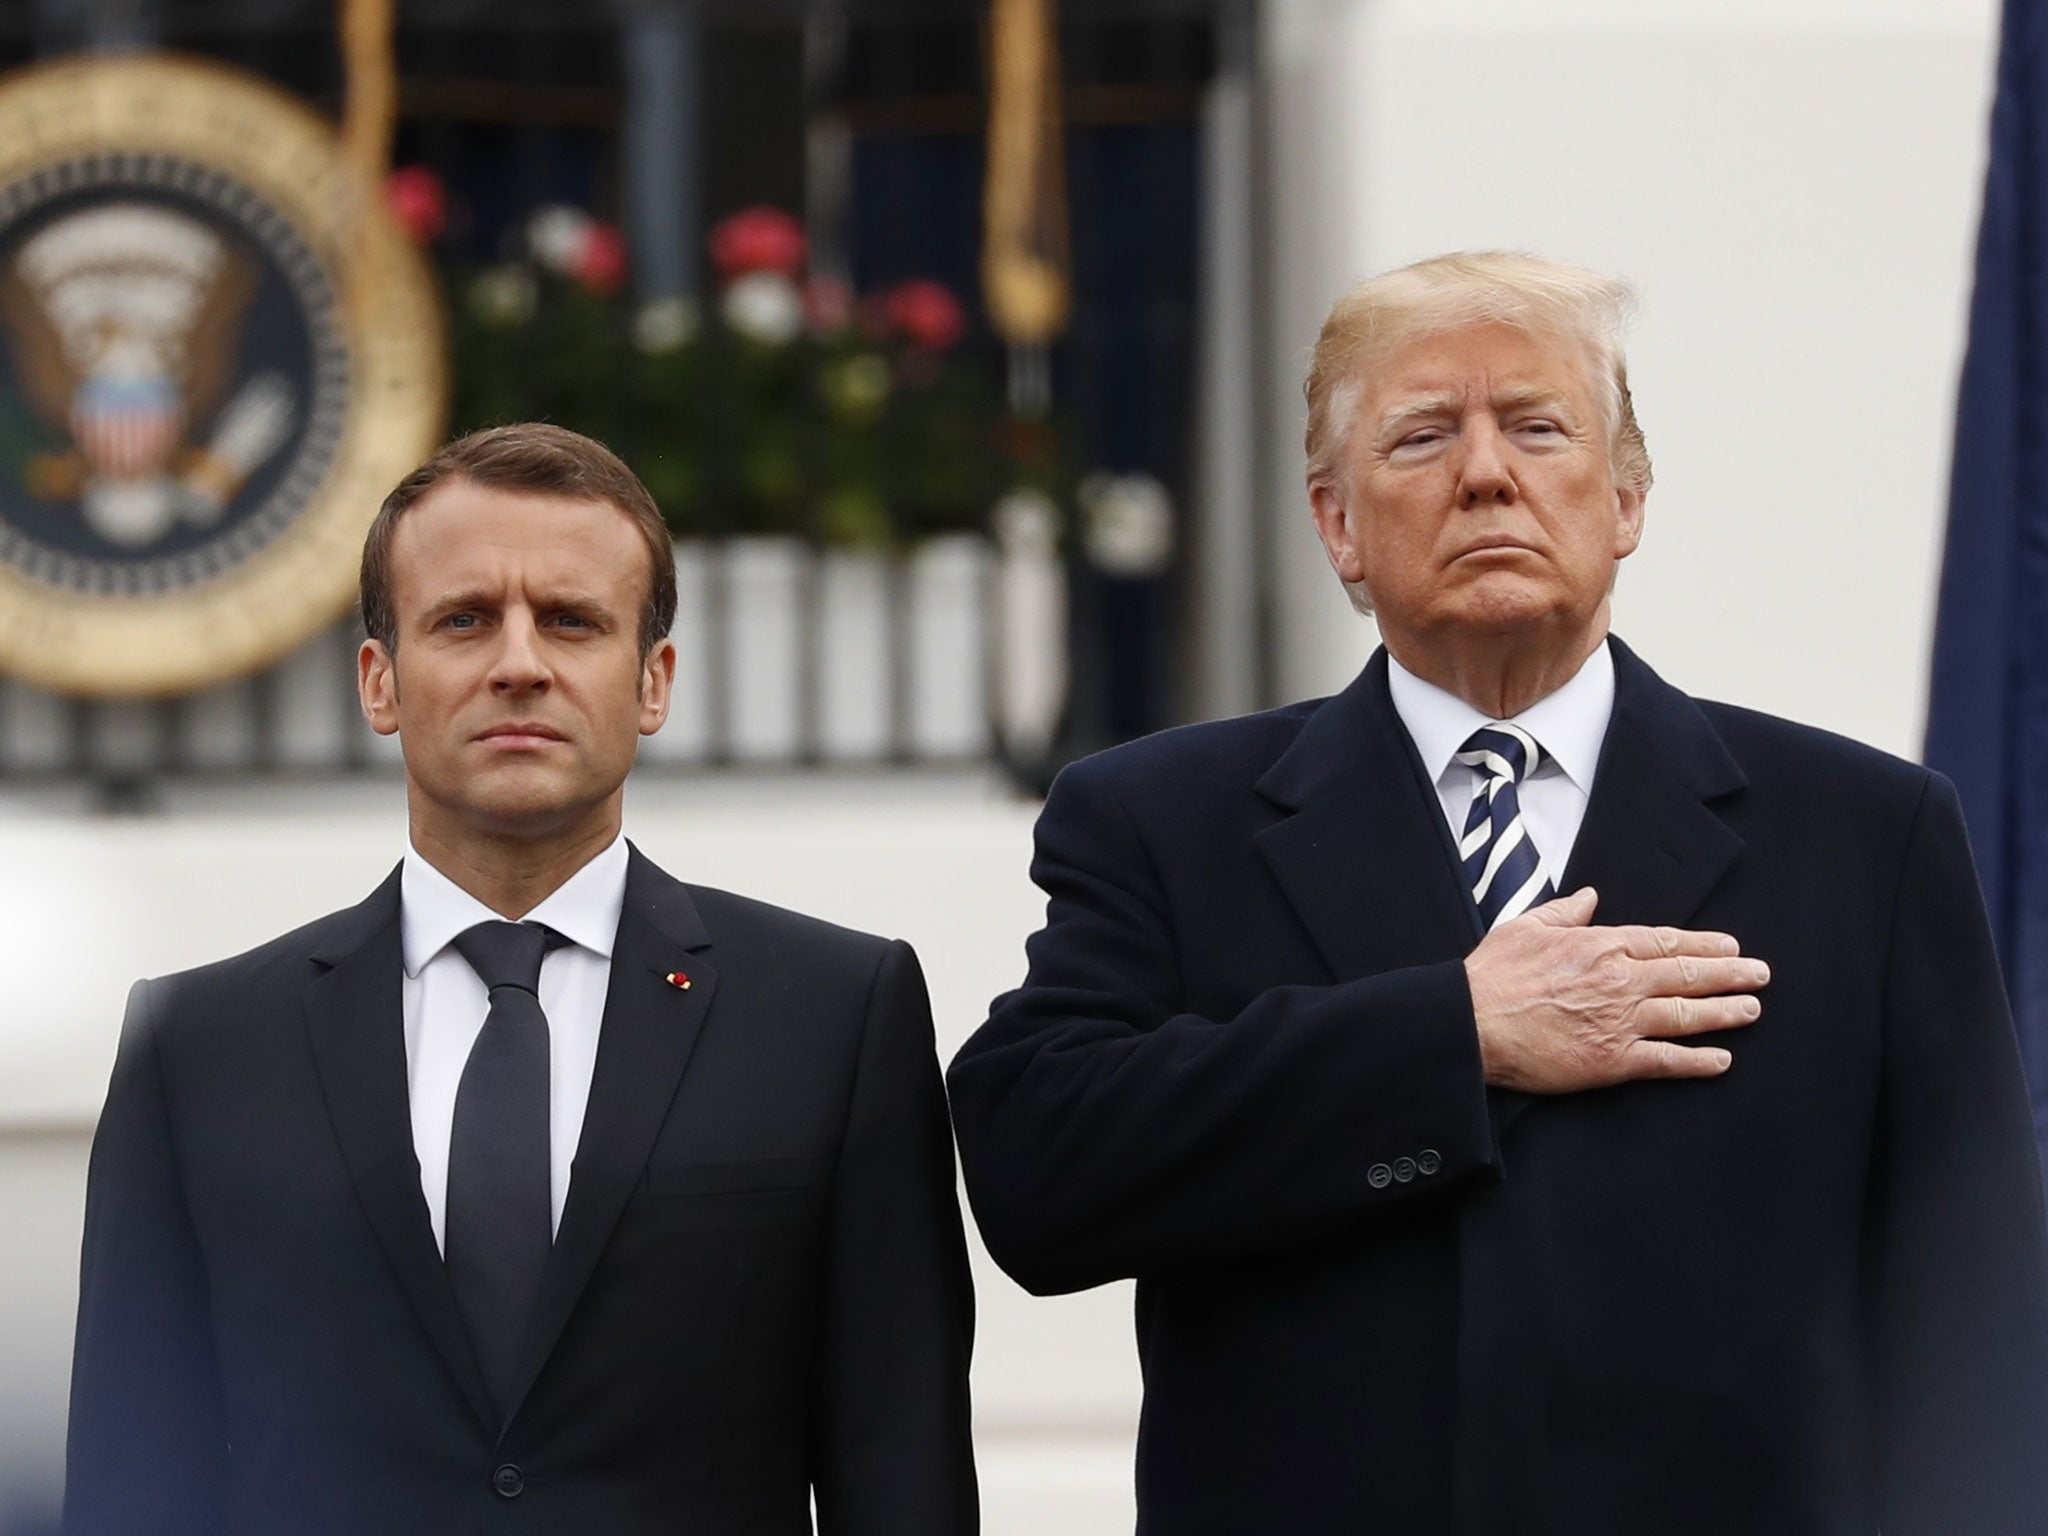 Macron's second day visiting Trump: French president proposes 'new' Iran  nuclear deal in gamble to keep USA on board, as it happened   The  Independent